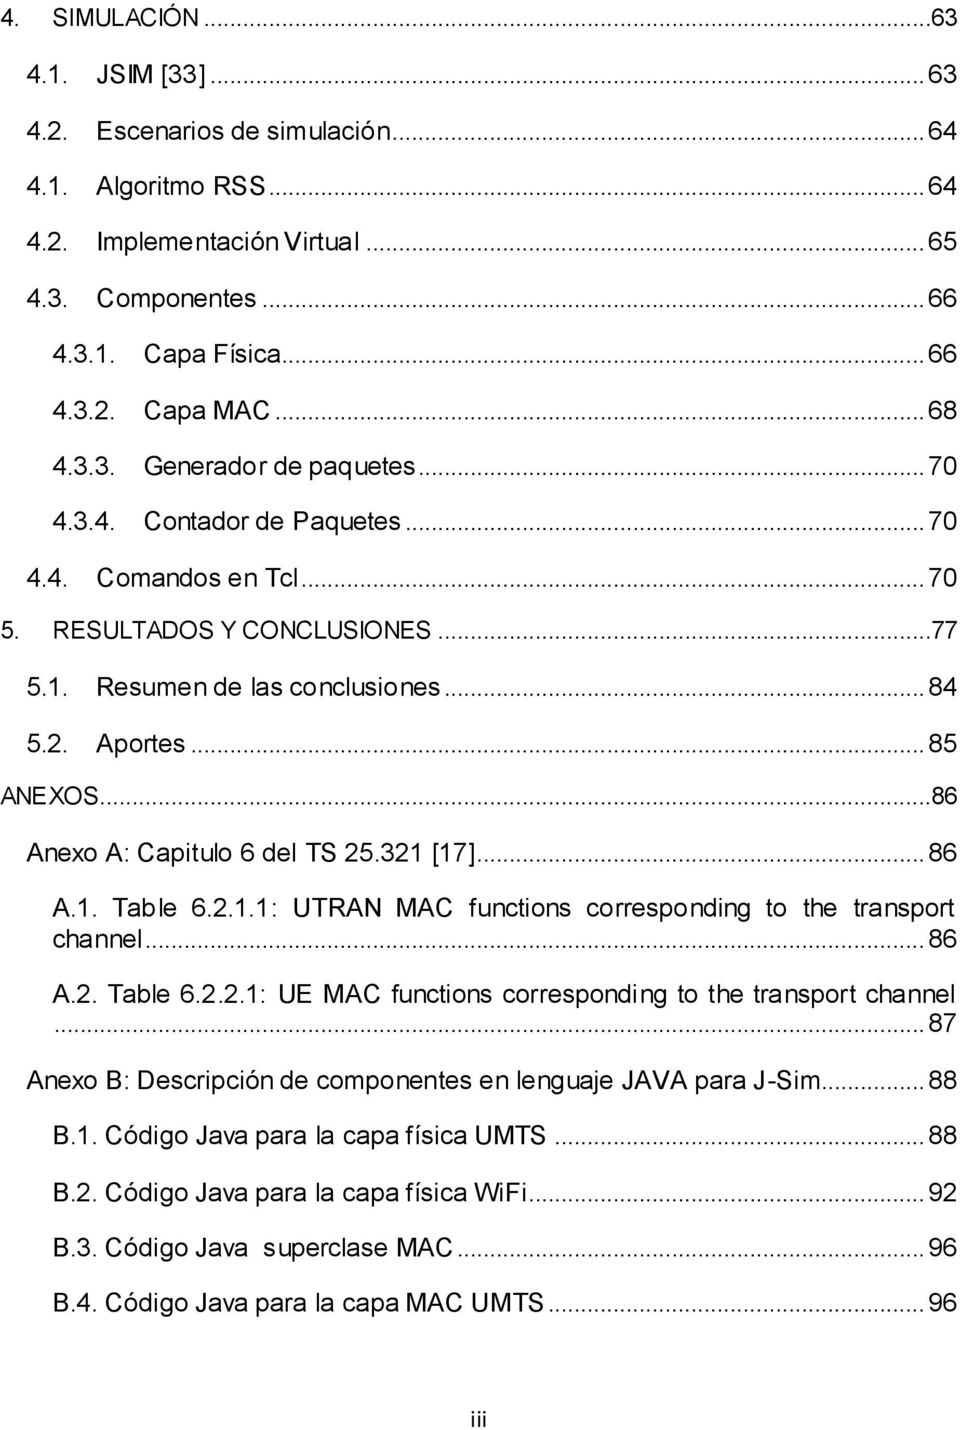 ..86 Anexo A: Capitulo 6 del TS 25.321 [17]... 86 A.1. Table 6.2.1.1: UTRAN MAC functions corresponding to the transport channel... 86 A.2. Table 6.2.2.1: UE MAC functions corresponding to the transport channel.